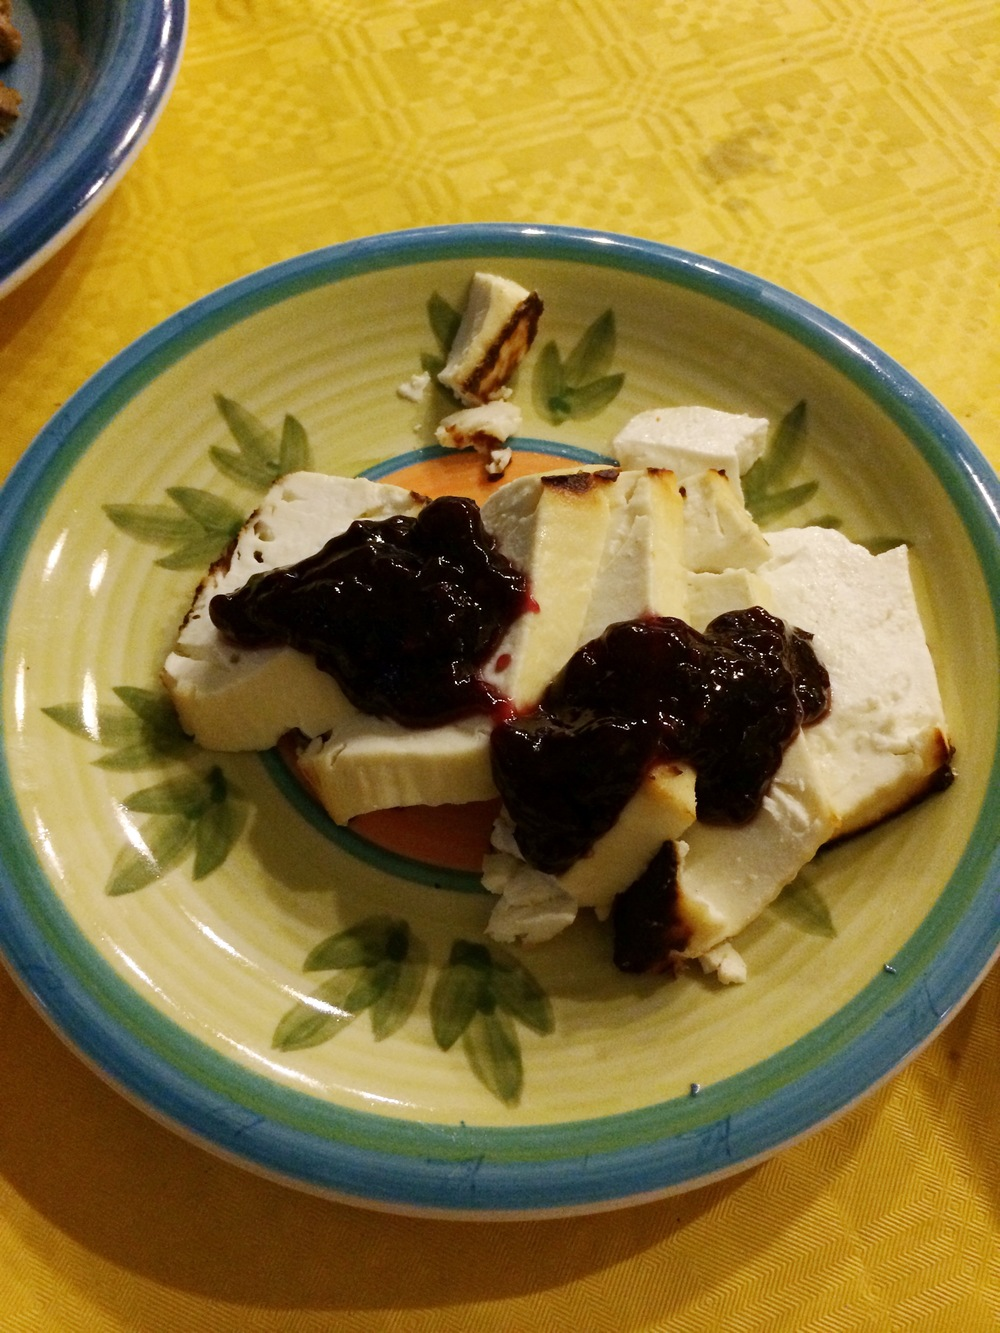 the amazing, divine baked ricotta with marmalade